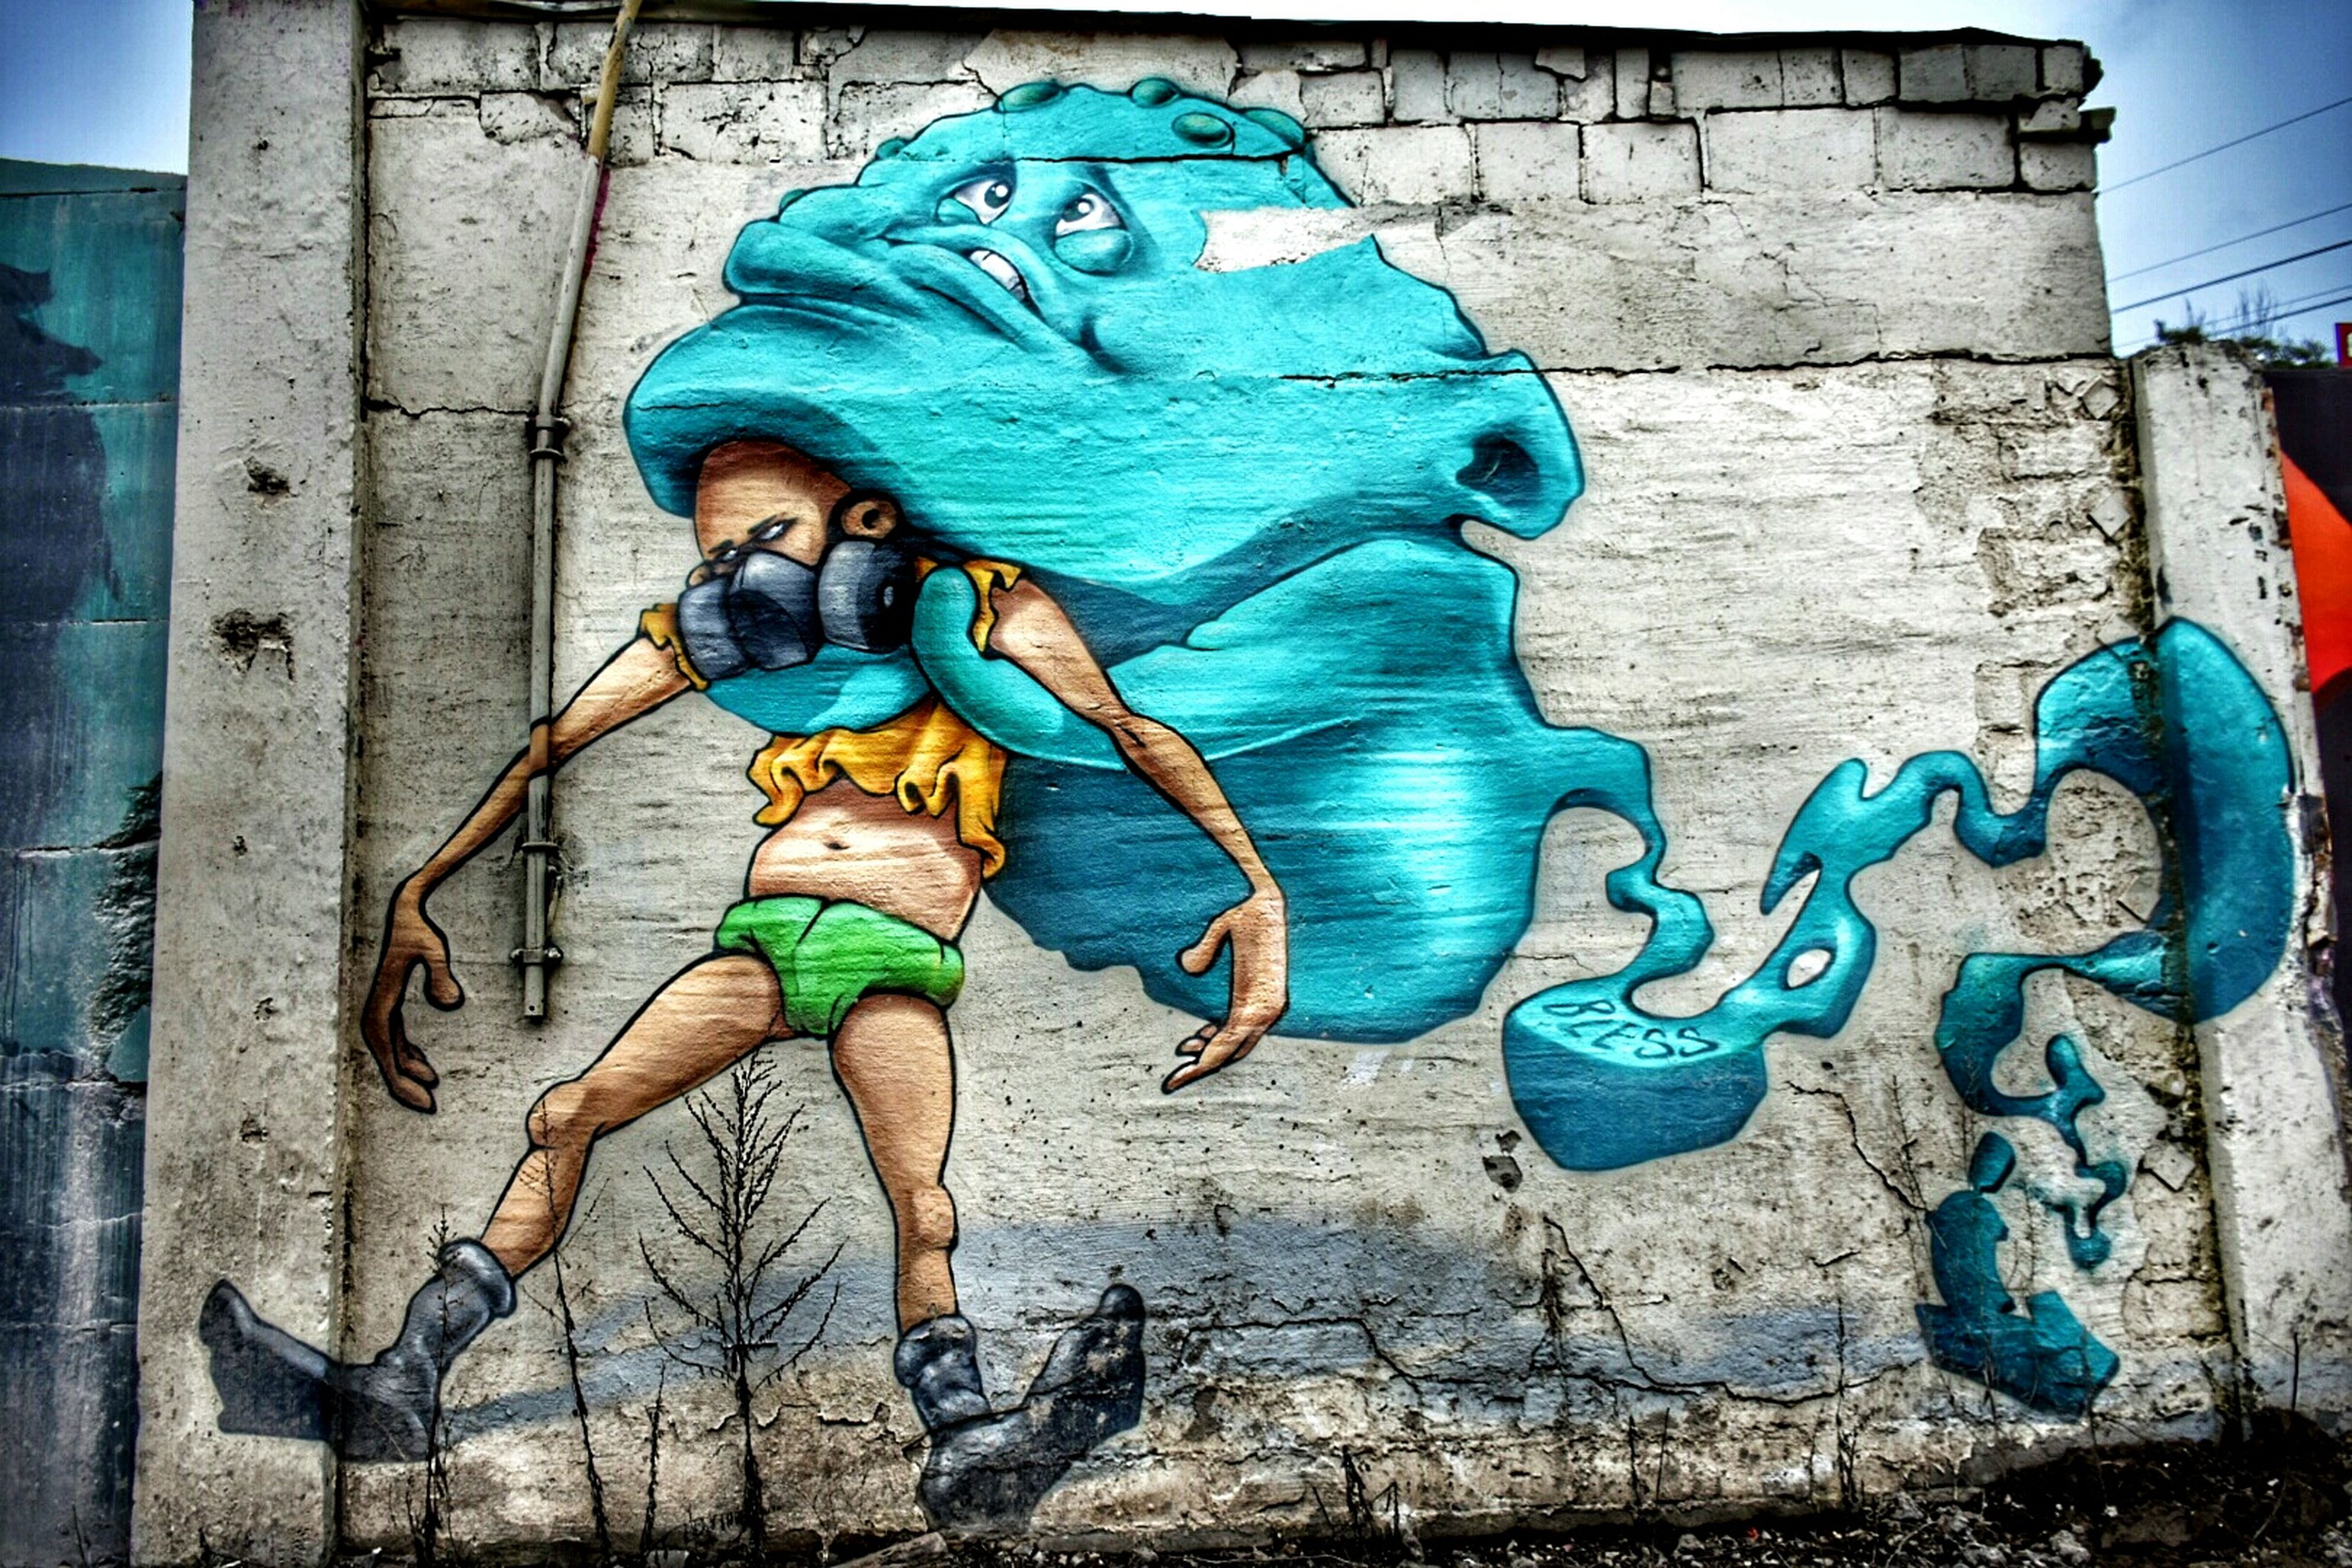 full length, architecture, built structure, building exterior, wall - building feature, casual clothing, blue, lifestyles, person, standing, leisure activity, front view, graffiti, brick wall, young adult, wall, portrait, looking at camera